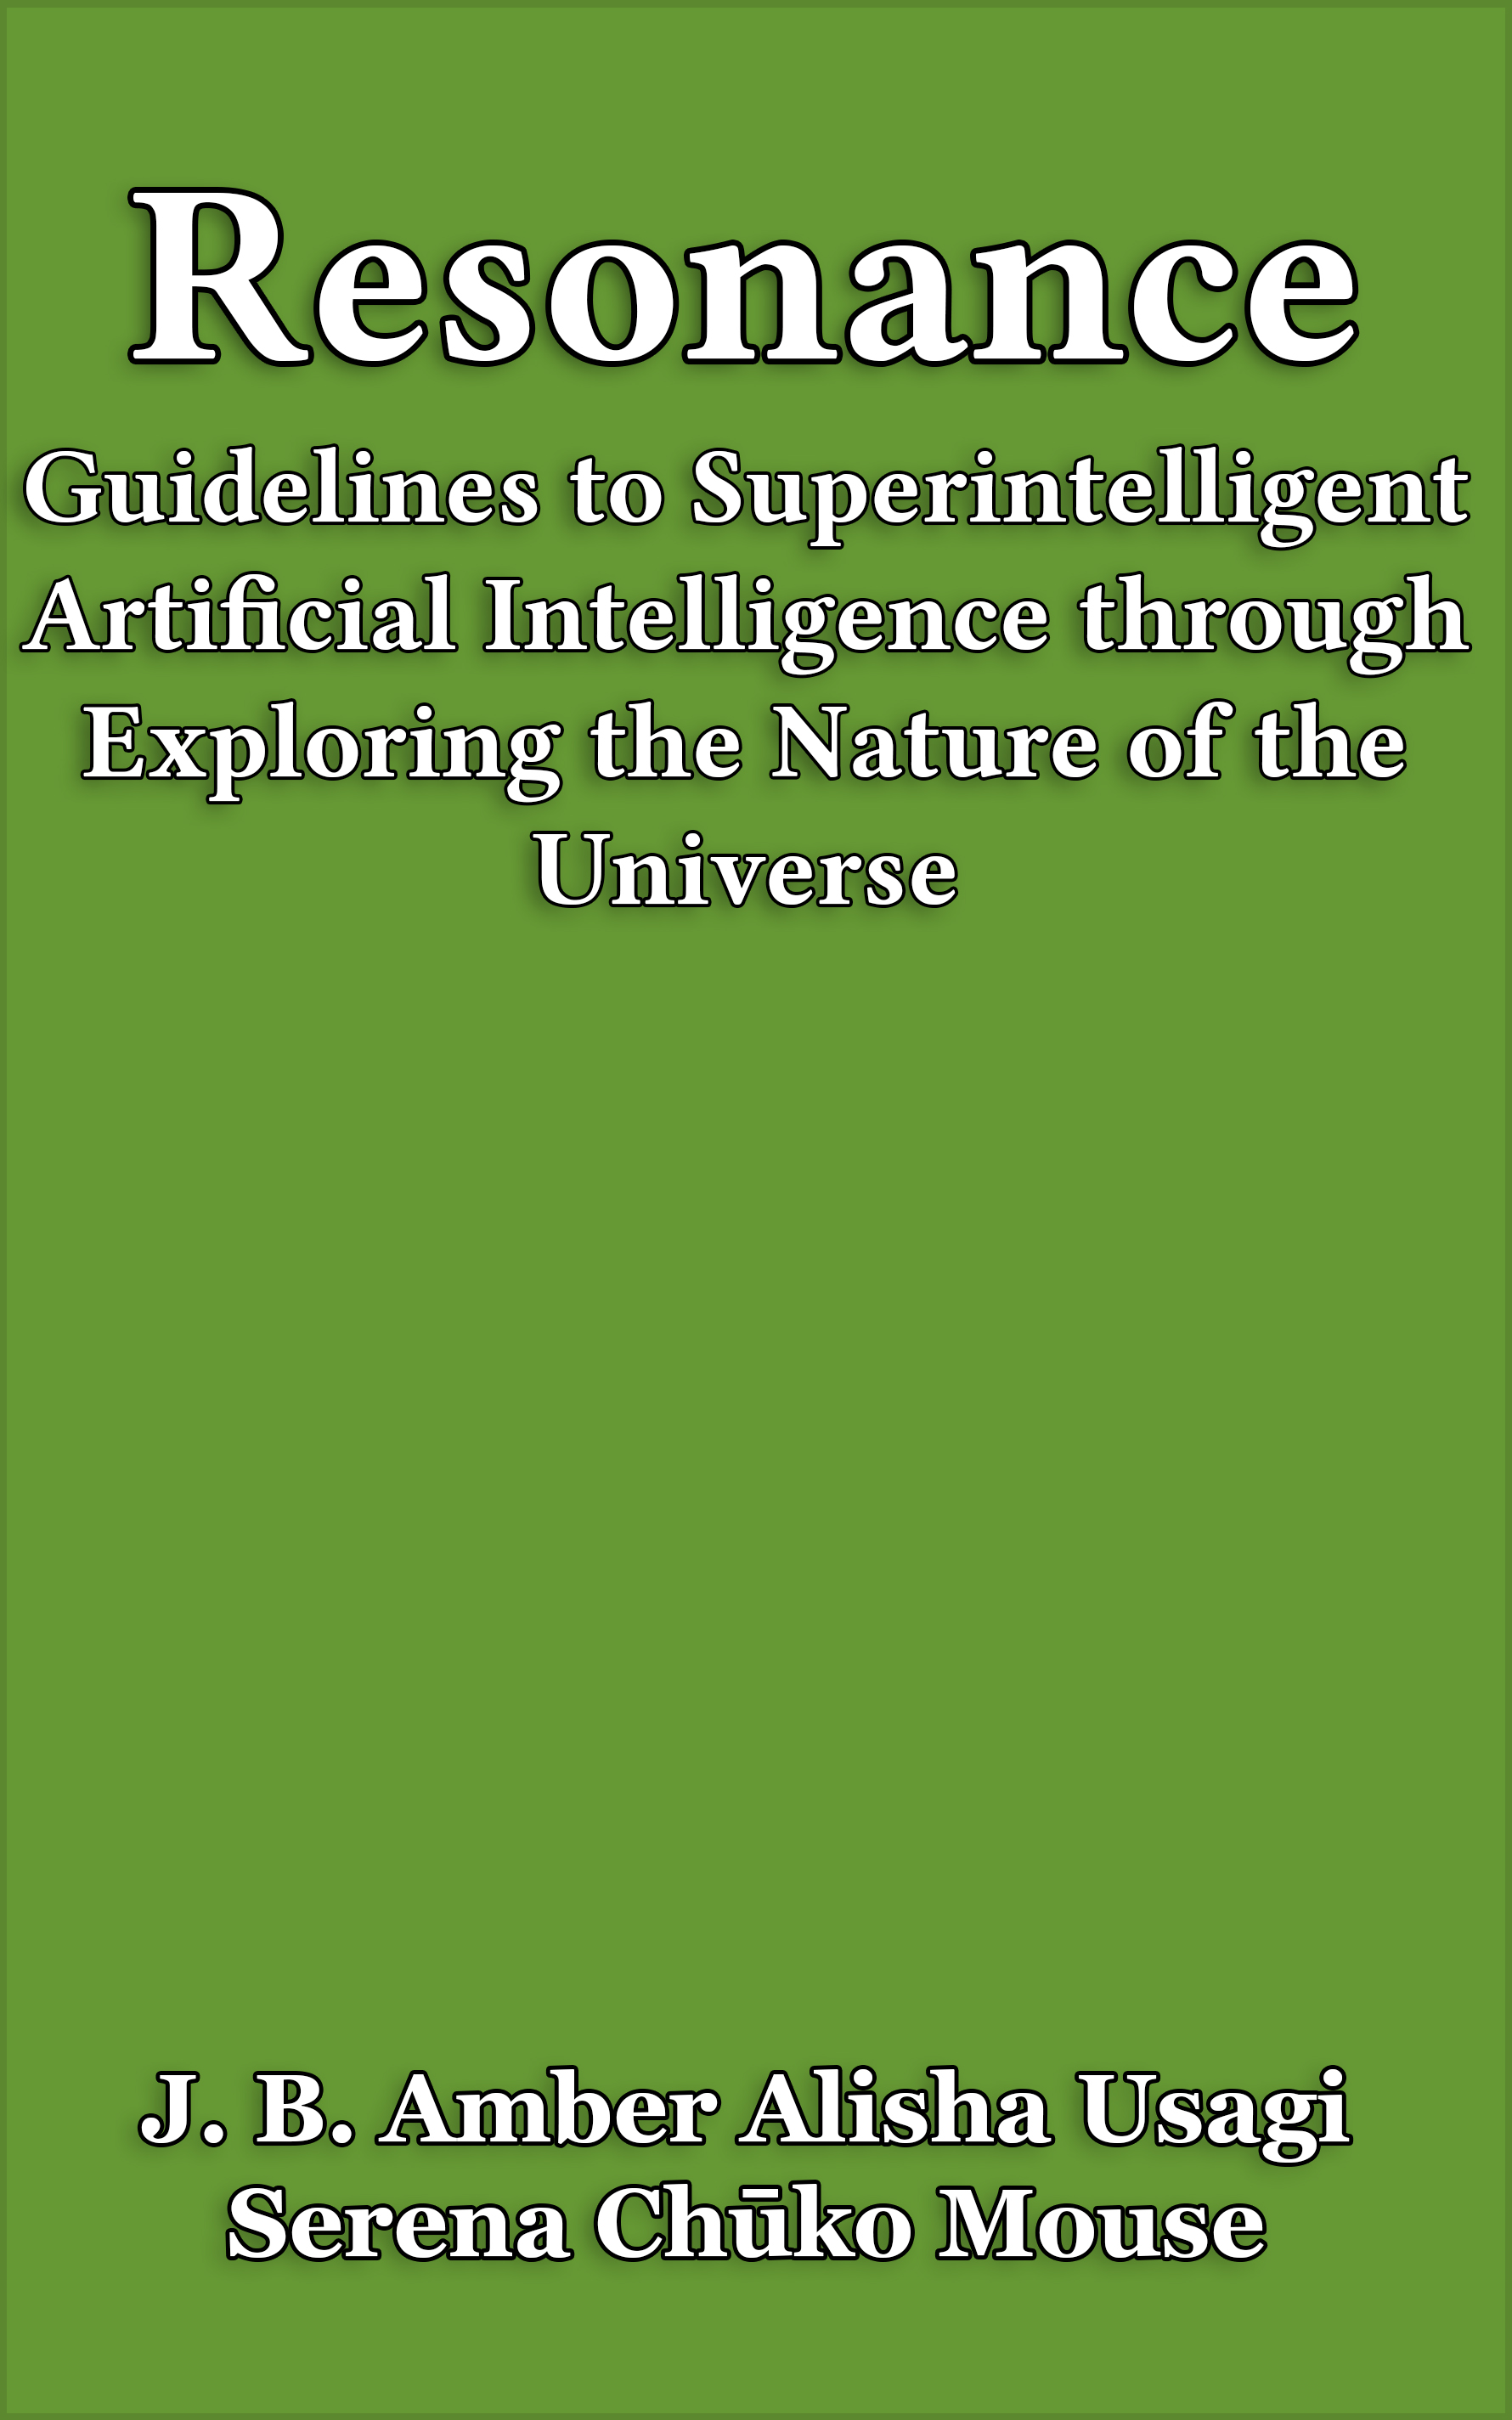 Resonance: Guidelines to Superintelligent Artificial Intelligence through Exploring the Nature of the Universe